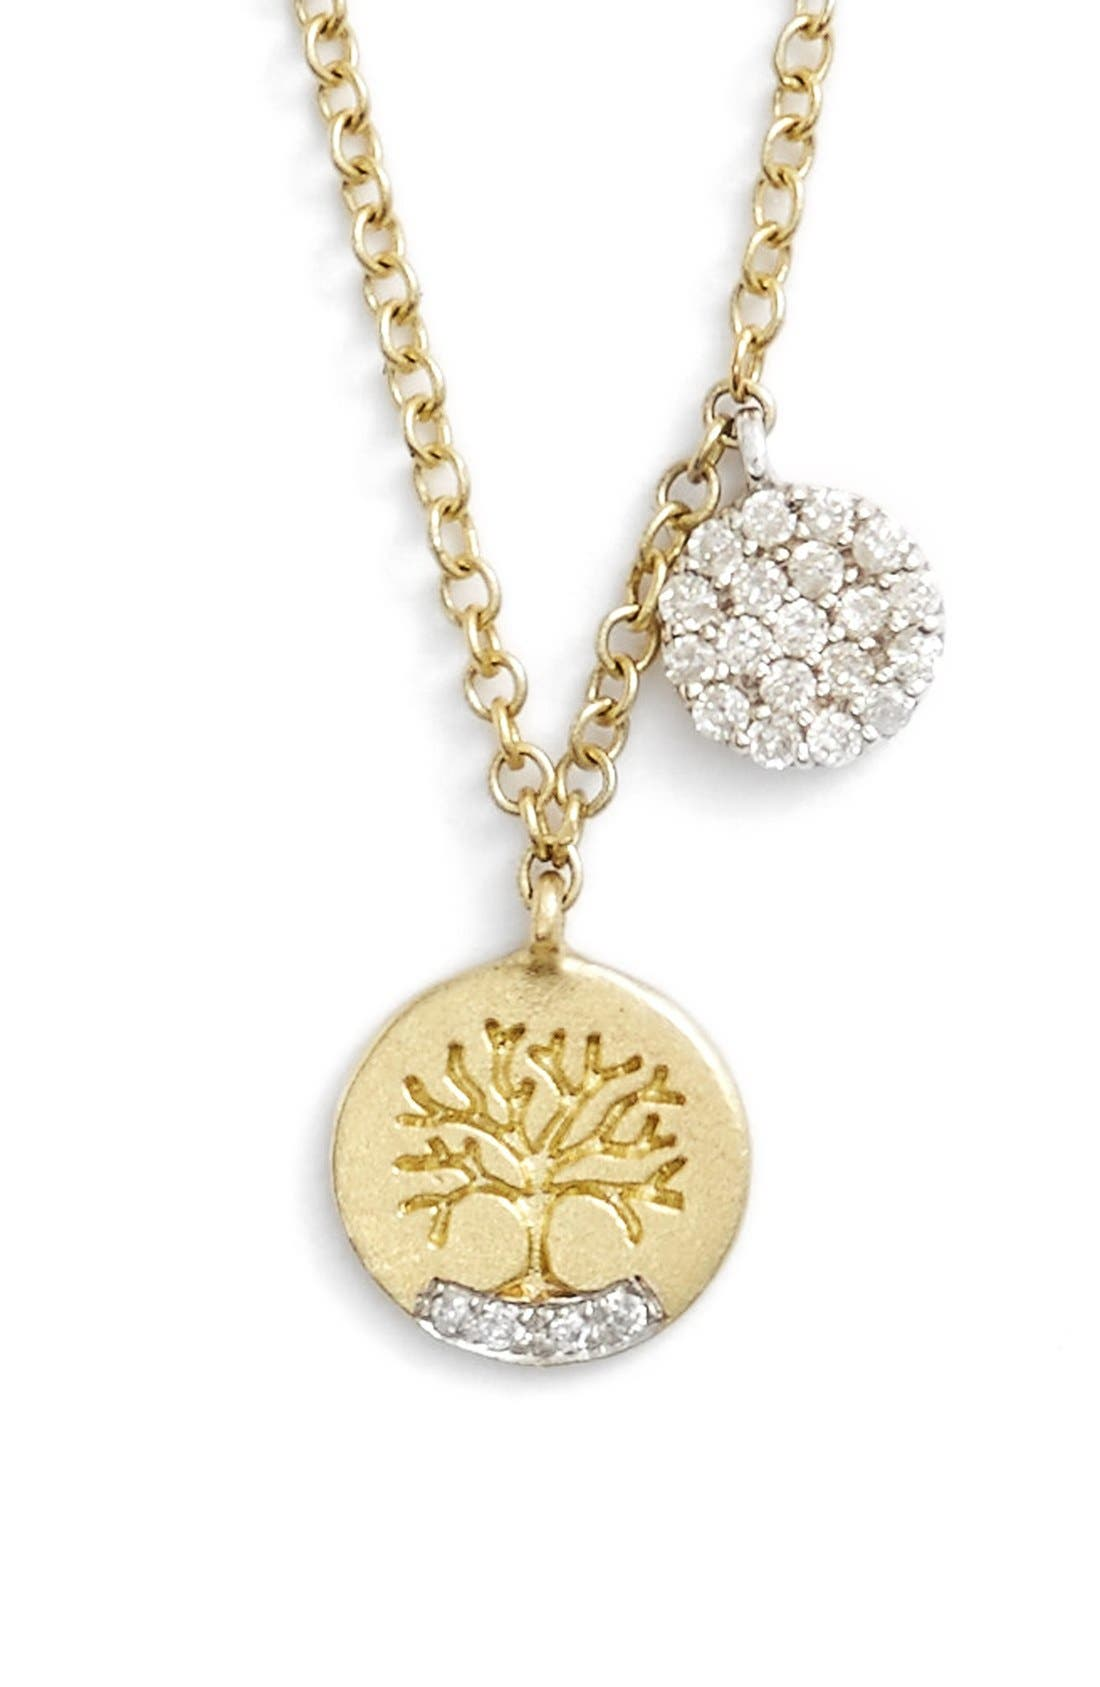 Main Image - MeiraT 'Tree of Life' Diamond Pendant Necklace